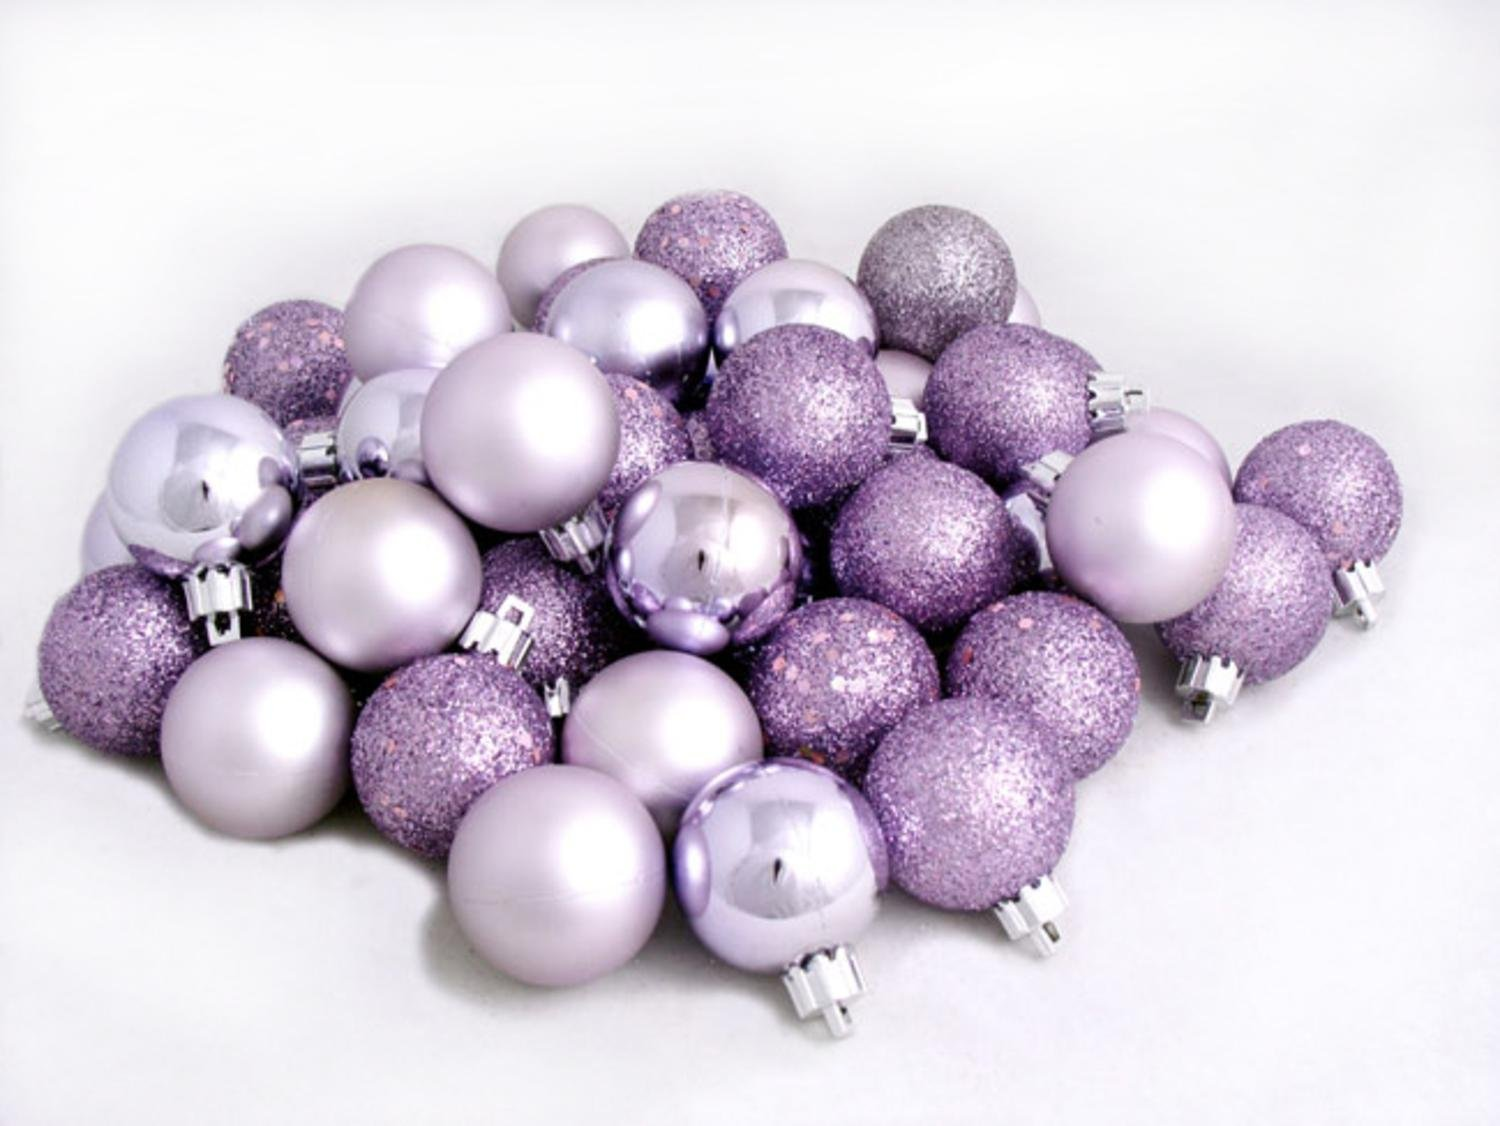 amazoncom 96ct purple lavender shatterproof 4 finish christmas ball ornaments 15 40mm home kitchen